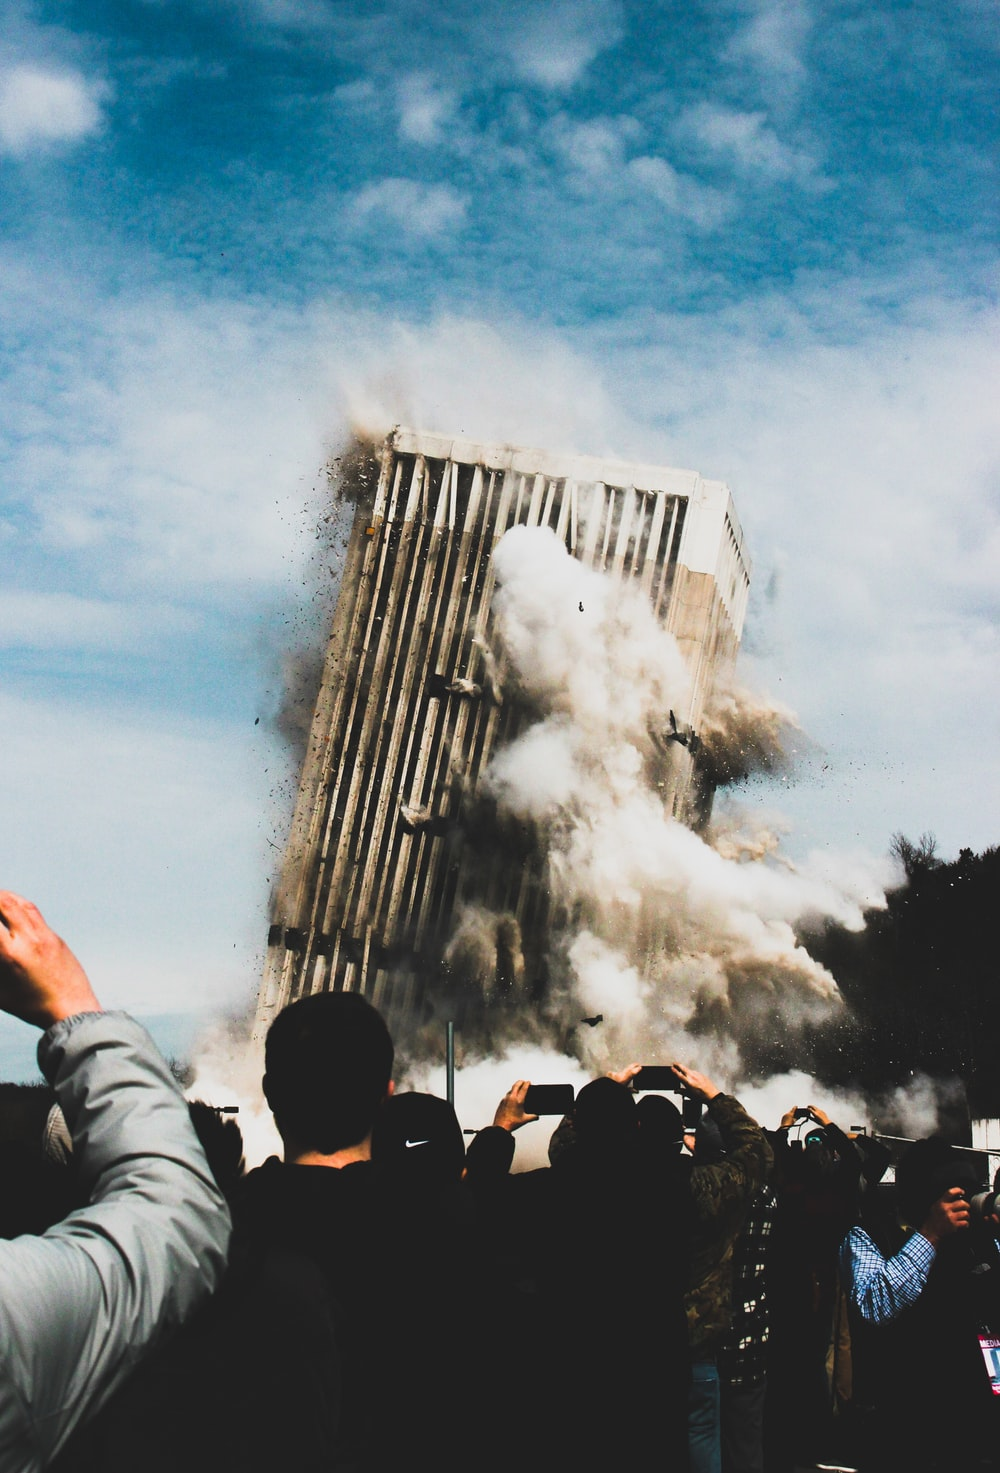 people taking photo of collapsing building